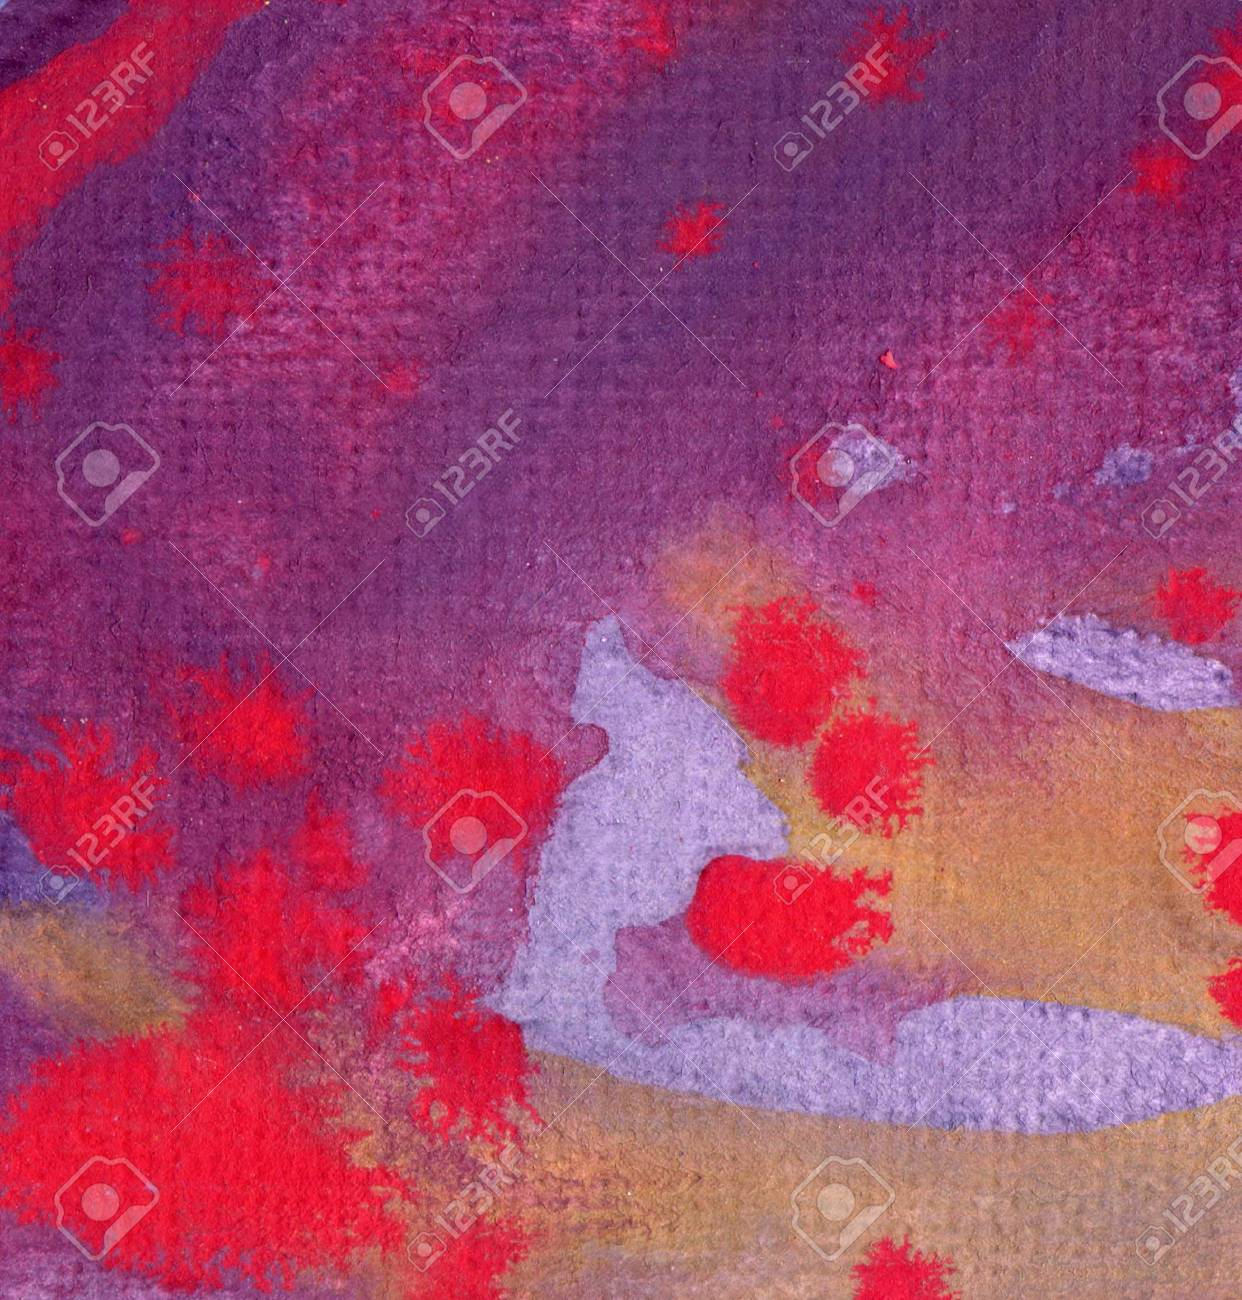 Artistic background watercolor on watercolor paper Stock Photo - 15574772